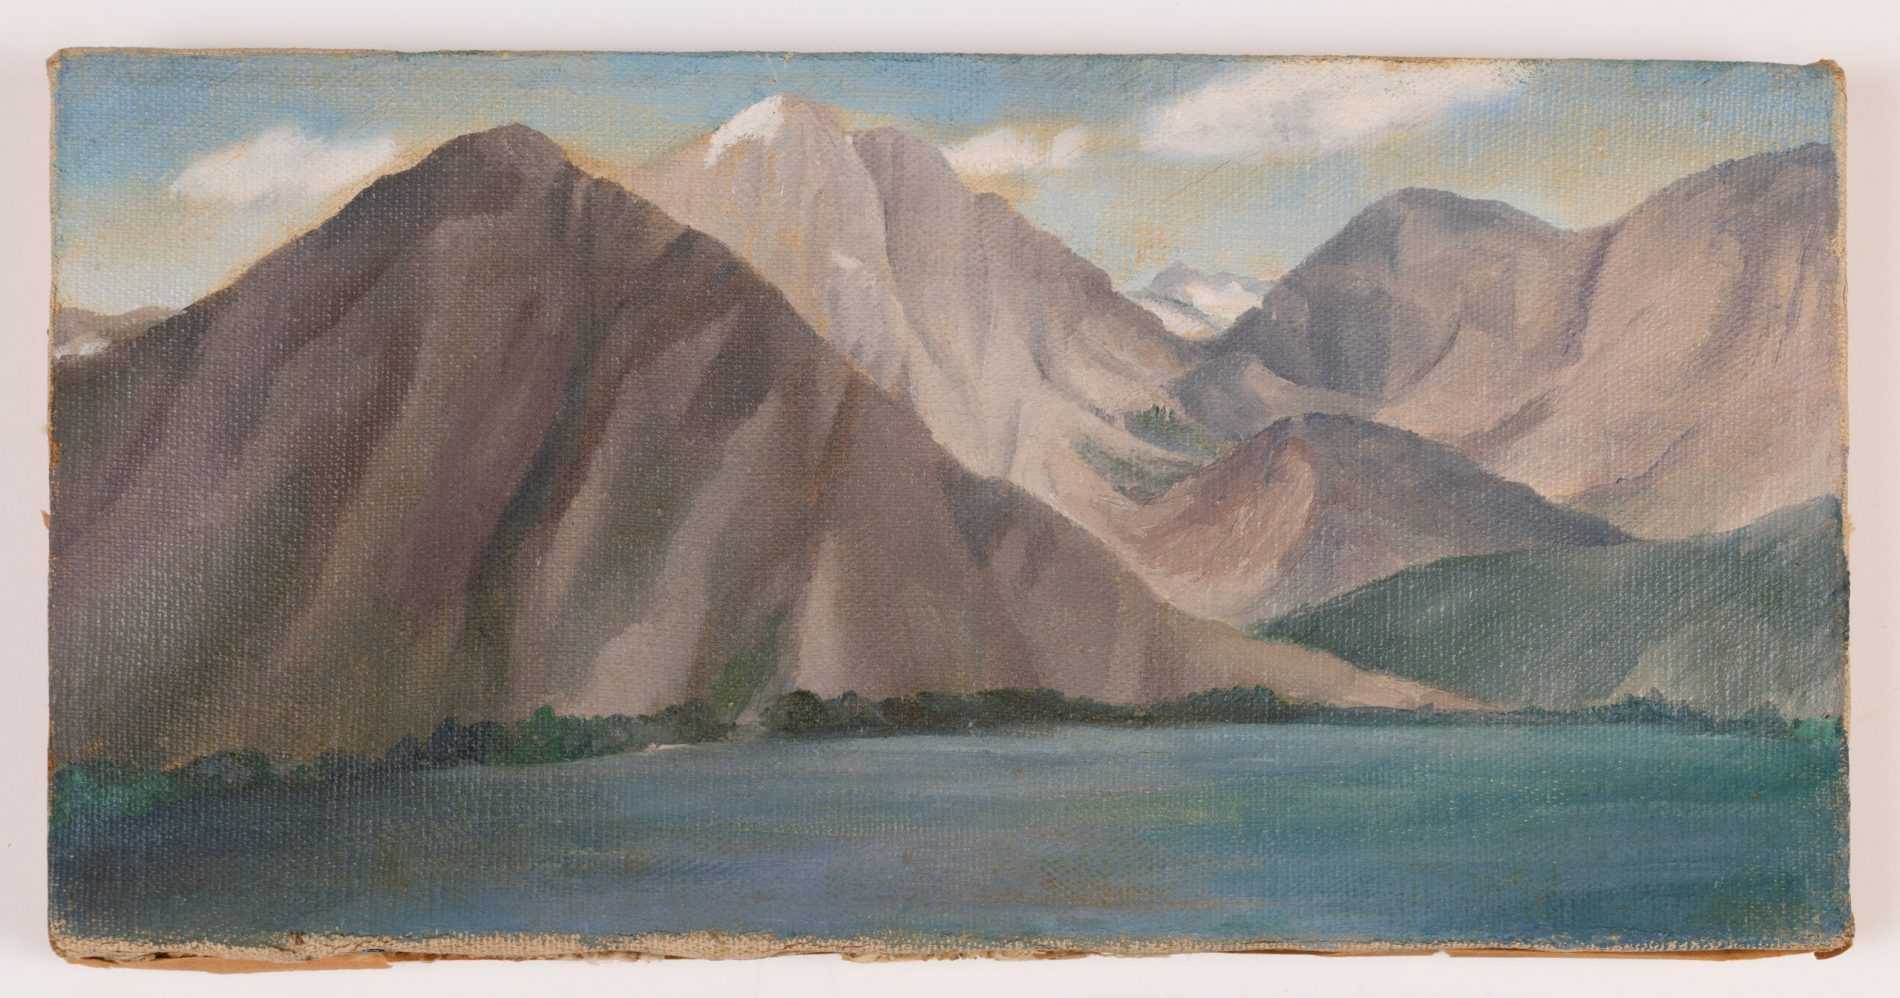 Ida Ten Eyck O'Keeffe (American, 1889-1961), Western Landscape, ca. 1935. Oil on canvas, 6 x 12 in. Carolyn T. Anderson Endowment Fund, Eugenie Mayer Bolz Endowment Fund, Chazen Museum of Art General Endowment Fund and D. Frederick Baker Fund purchase.